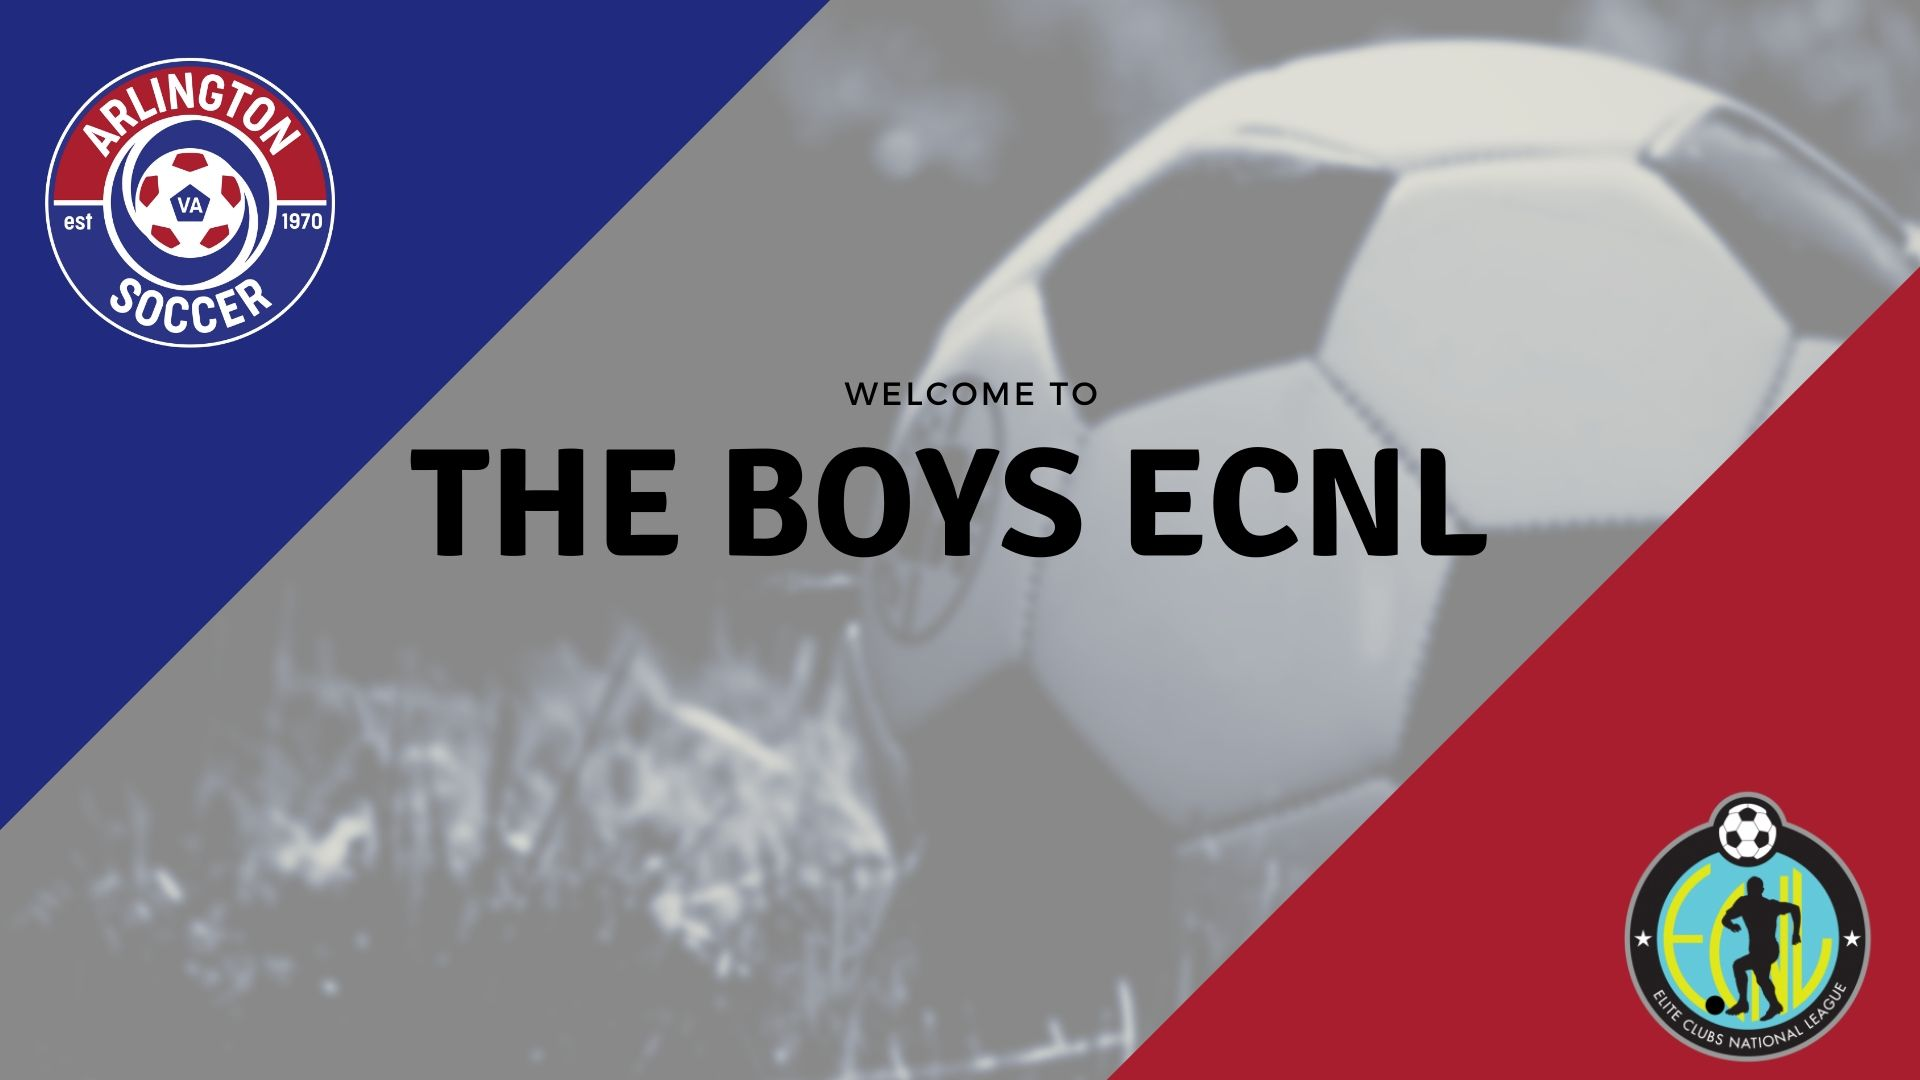 Arlington Soccer Boys Join the Boys ECNL Program